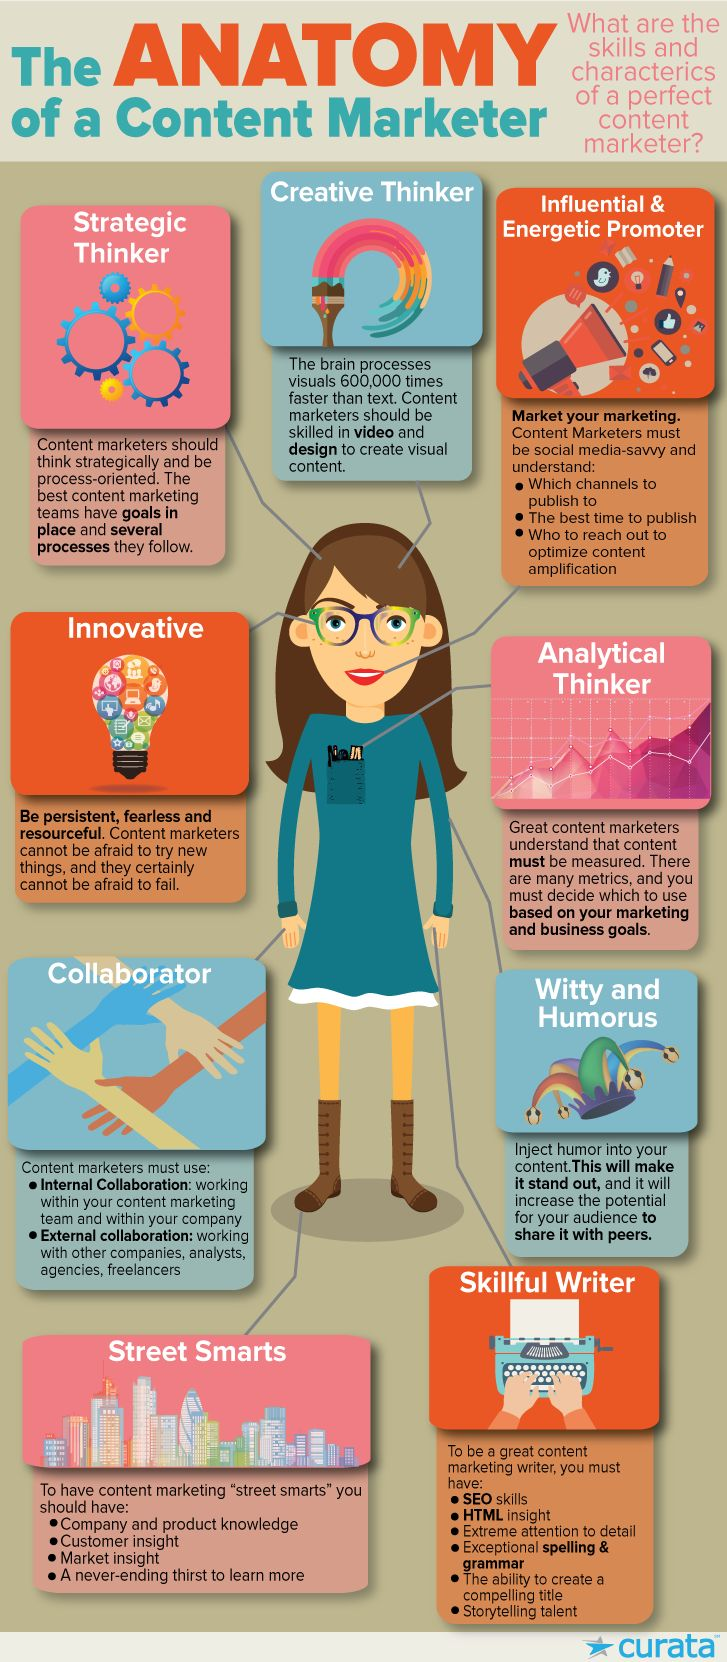 ANATOMY OF A CONTENT MARKETER [INFOGRAPHIC] #CONTENT #MARKETING #INFOGRAPHIC